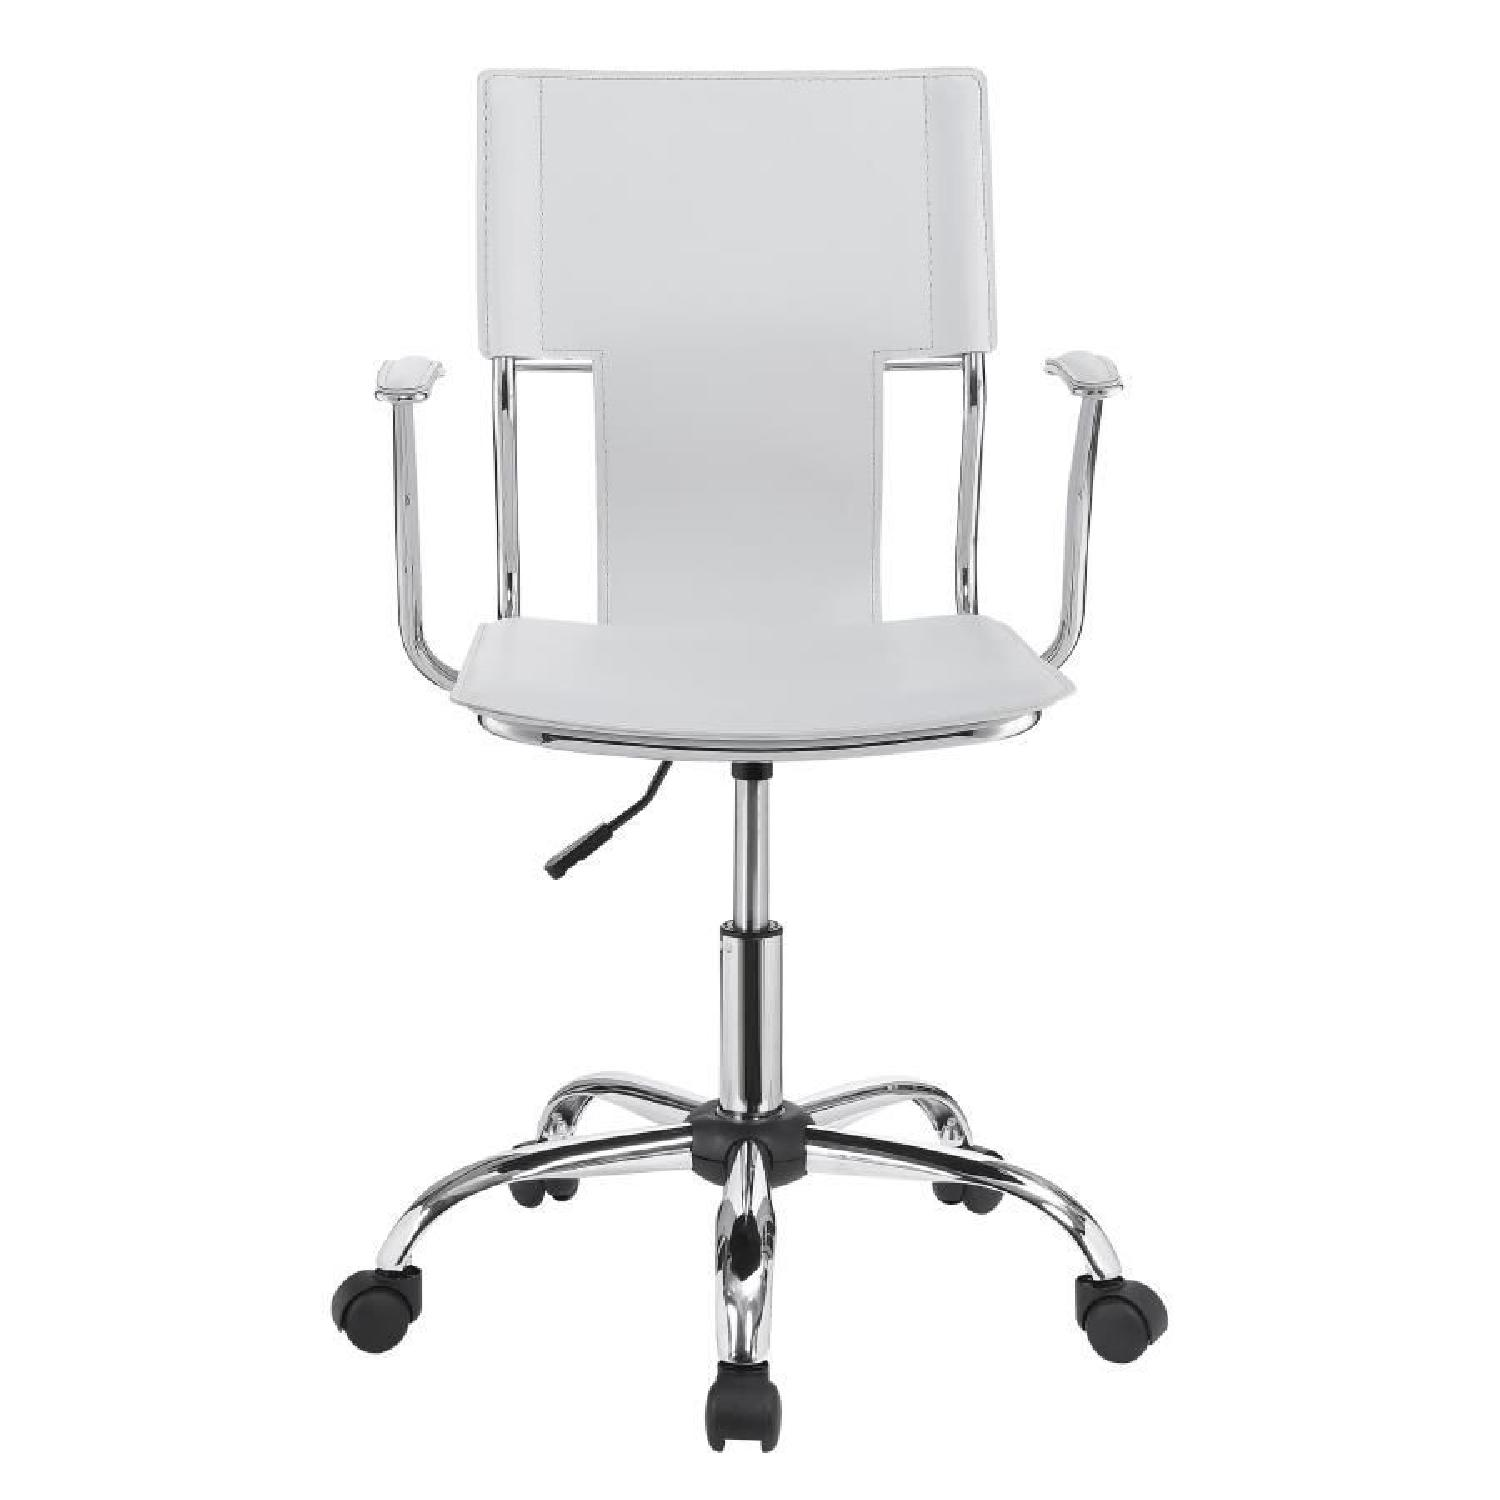 Modern Office Chair in White Leatherette w/ Chrome Legs - image-3